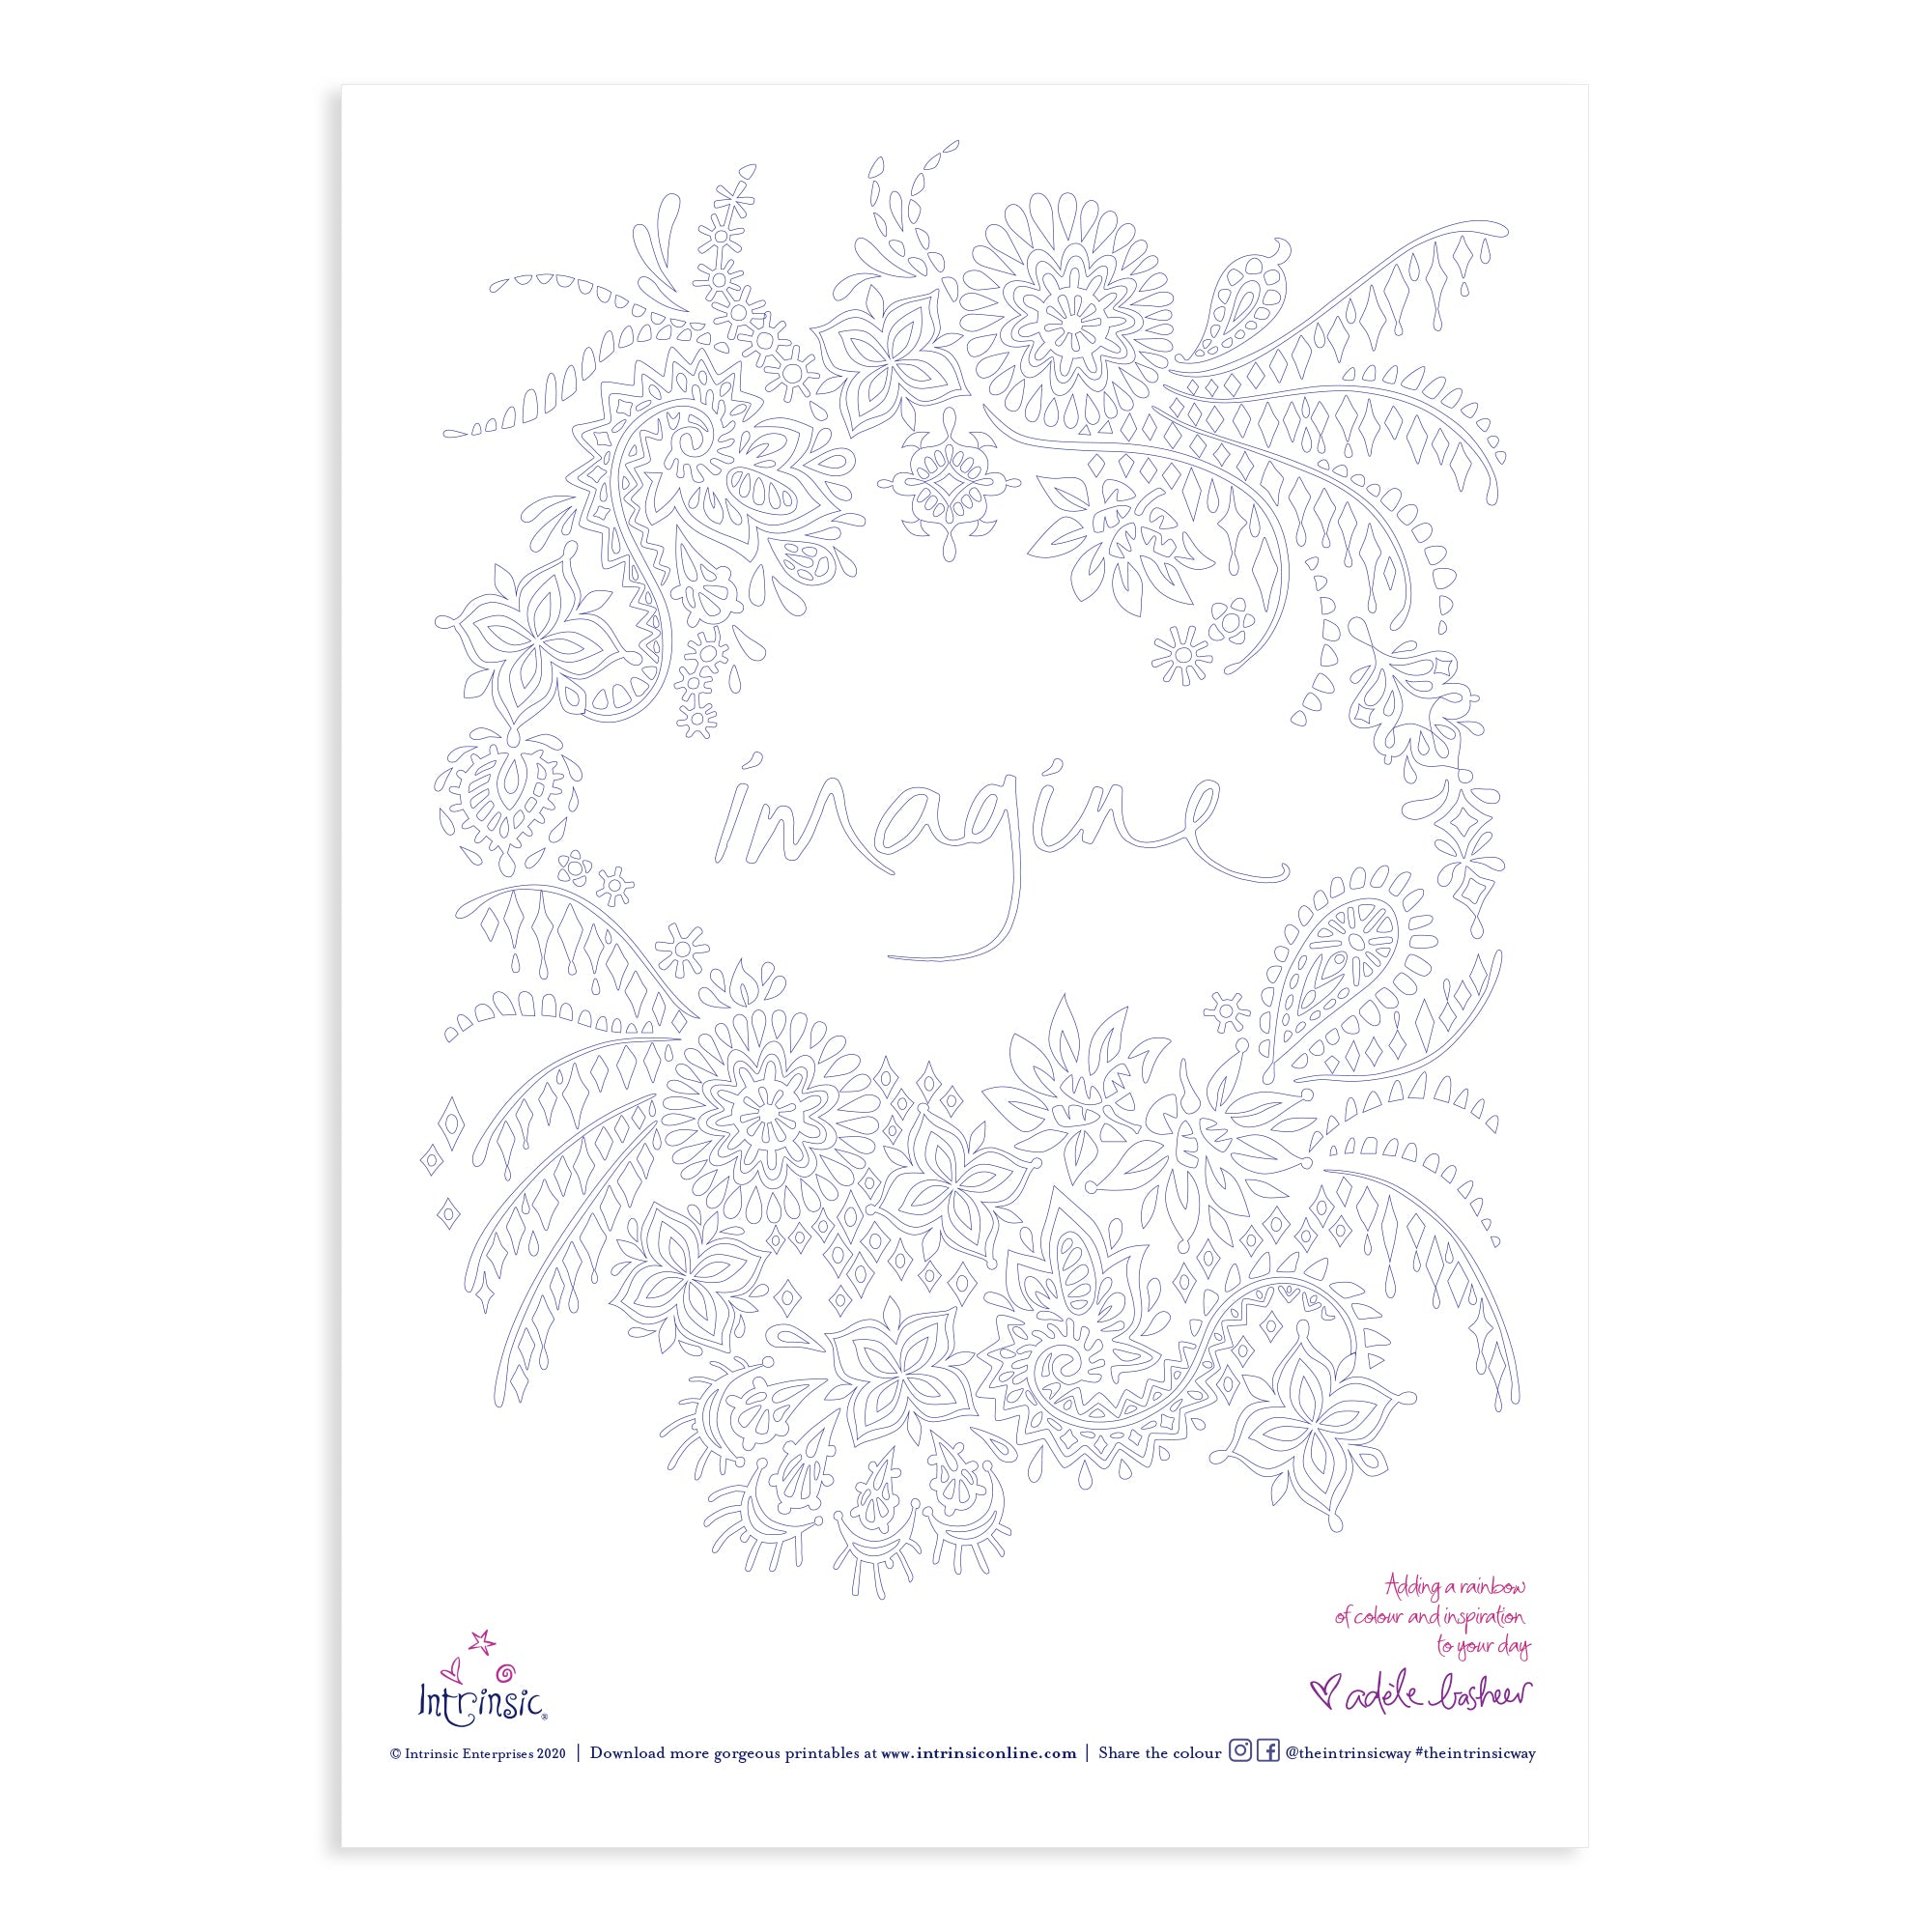 Intrinsic Colouring In Printable #7